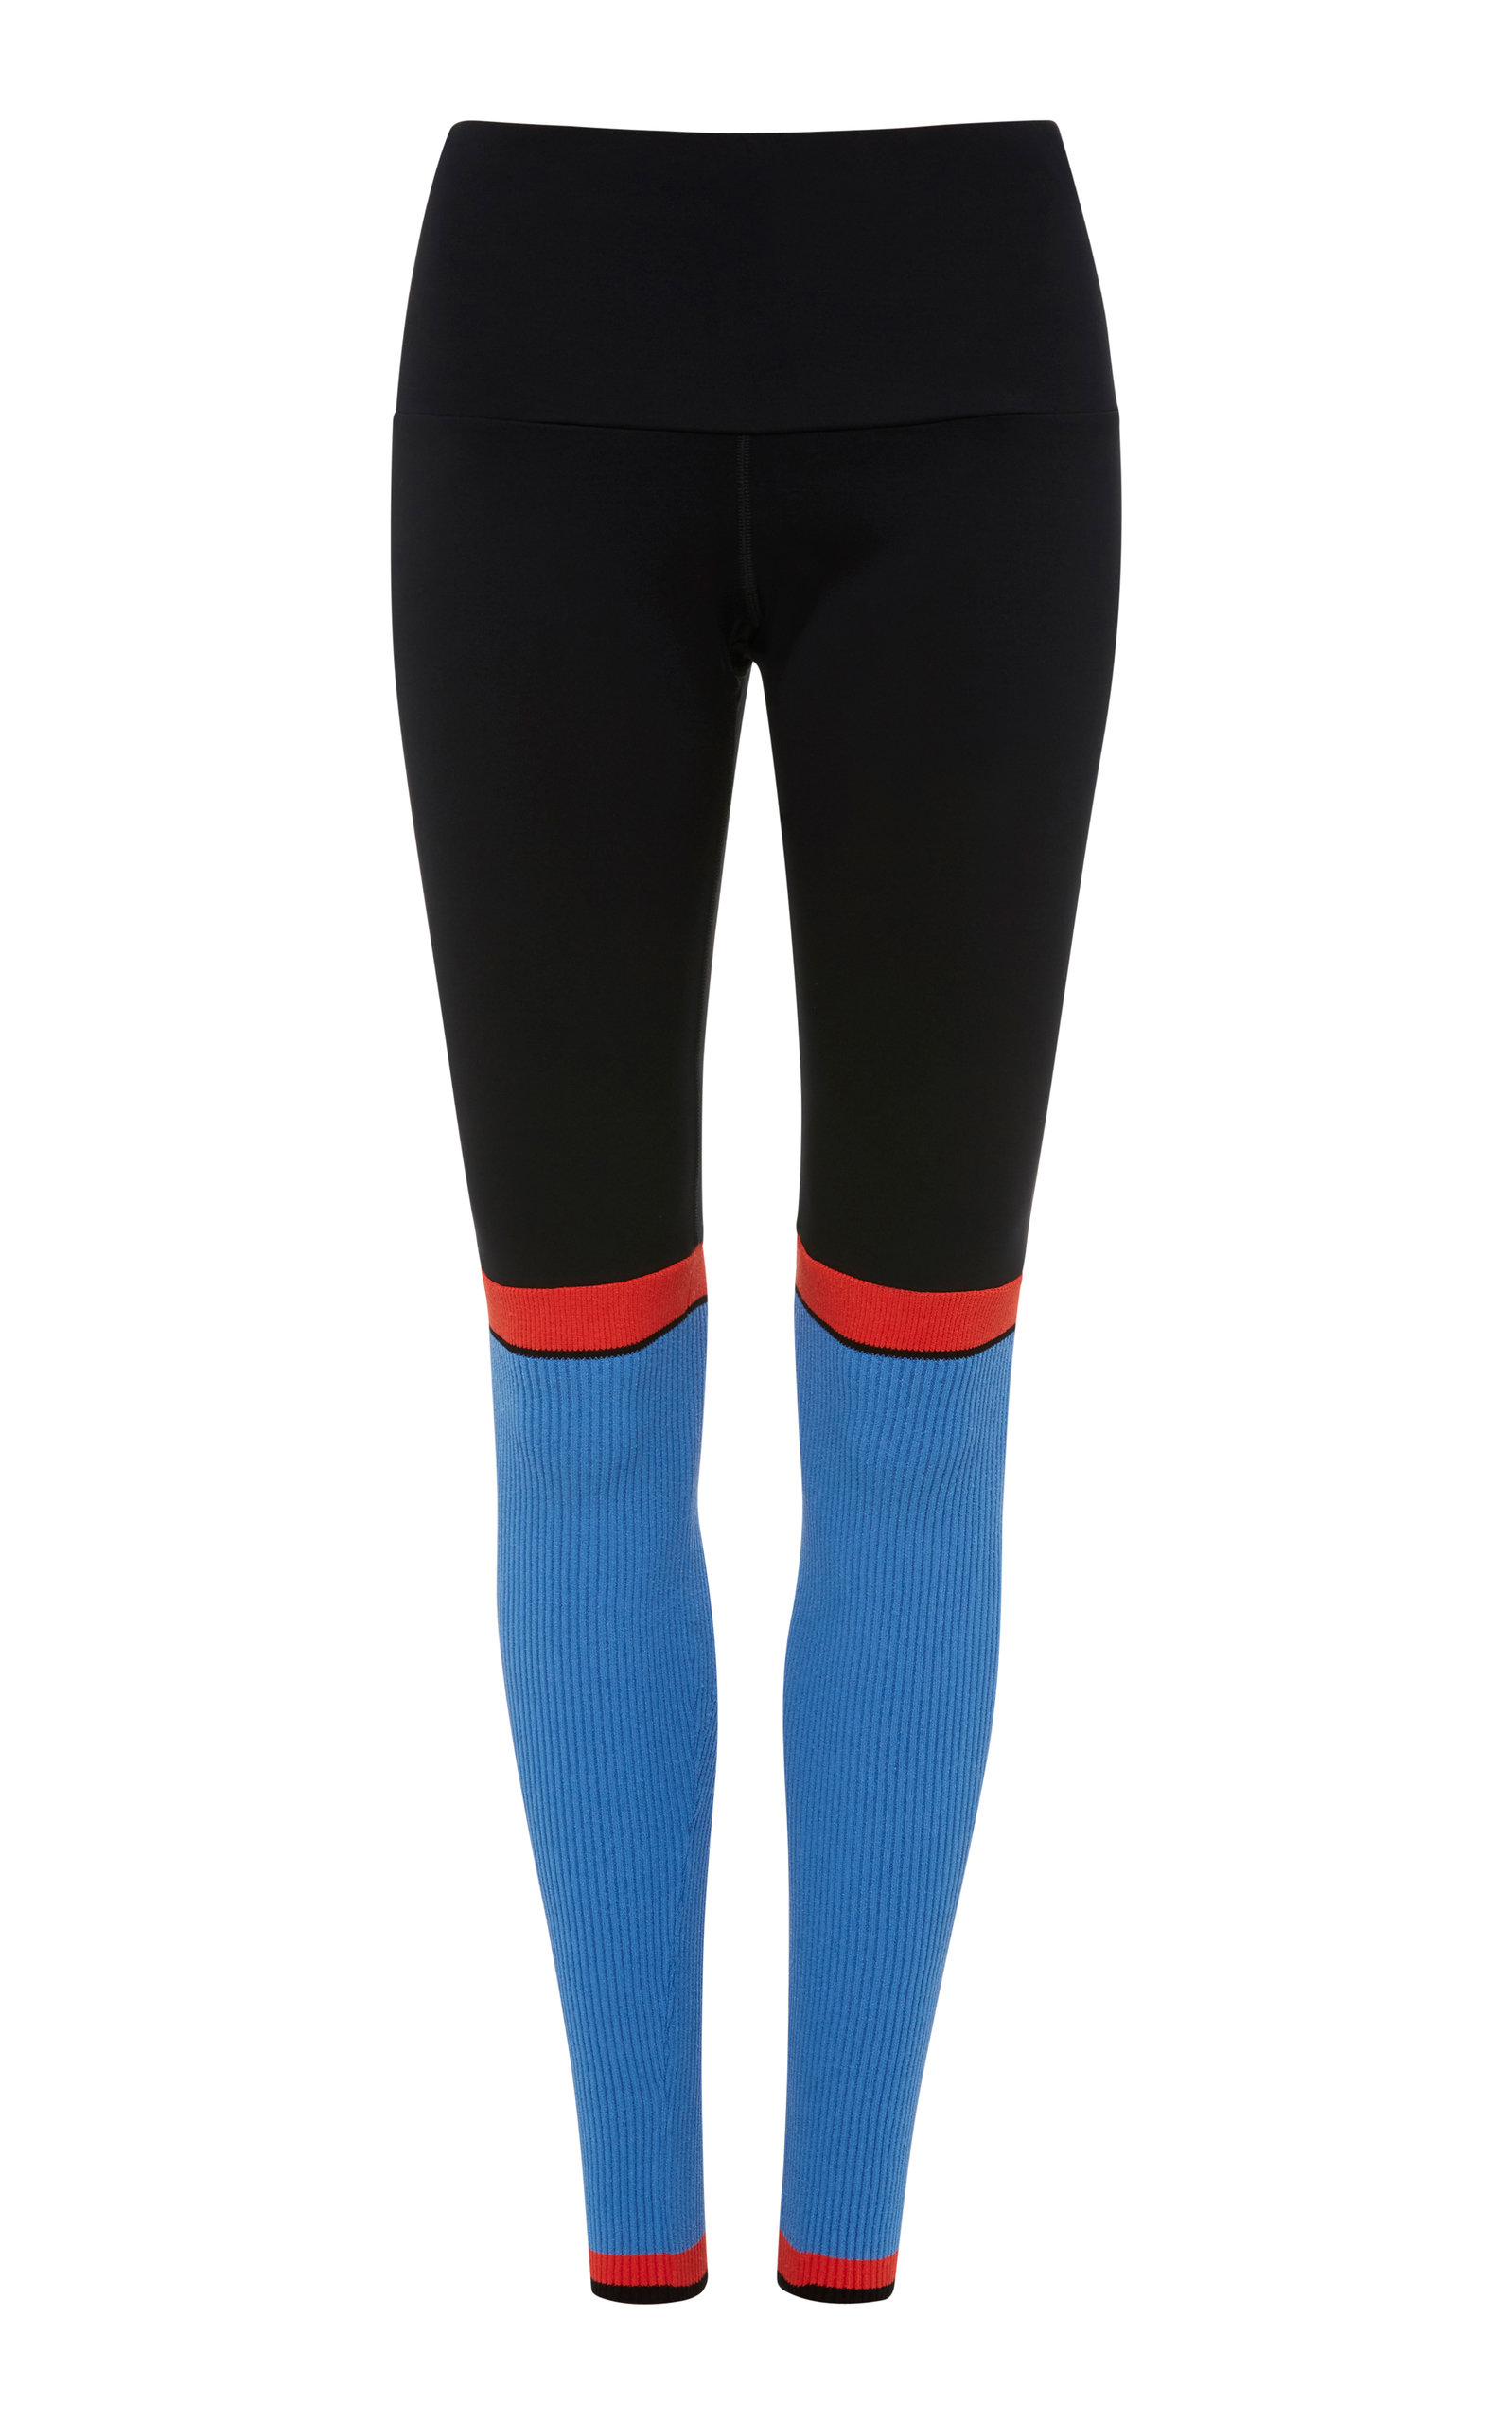 4254 SPORT High Waisted Ribbed Legging in Blue